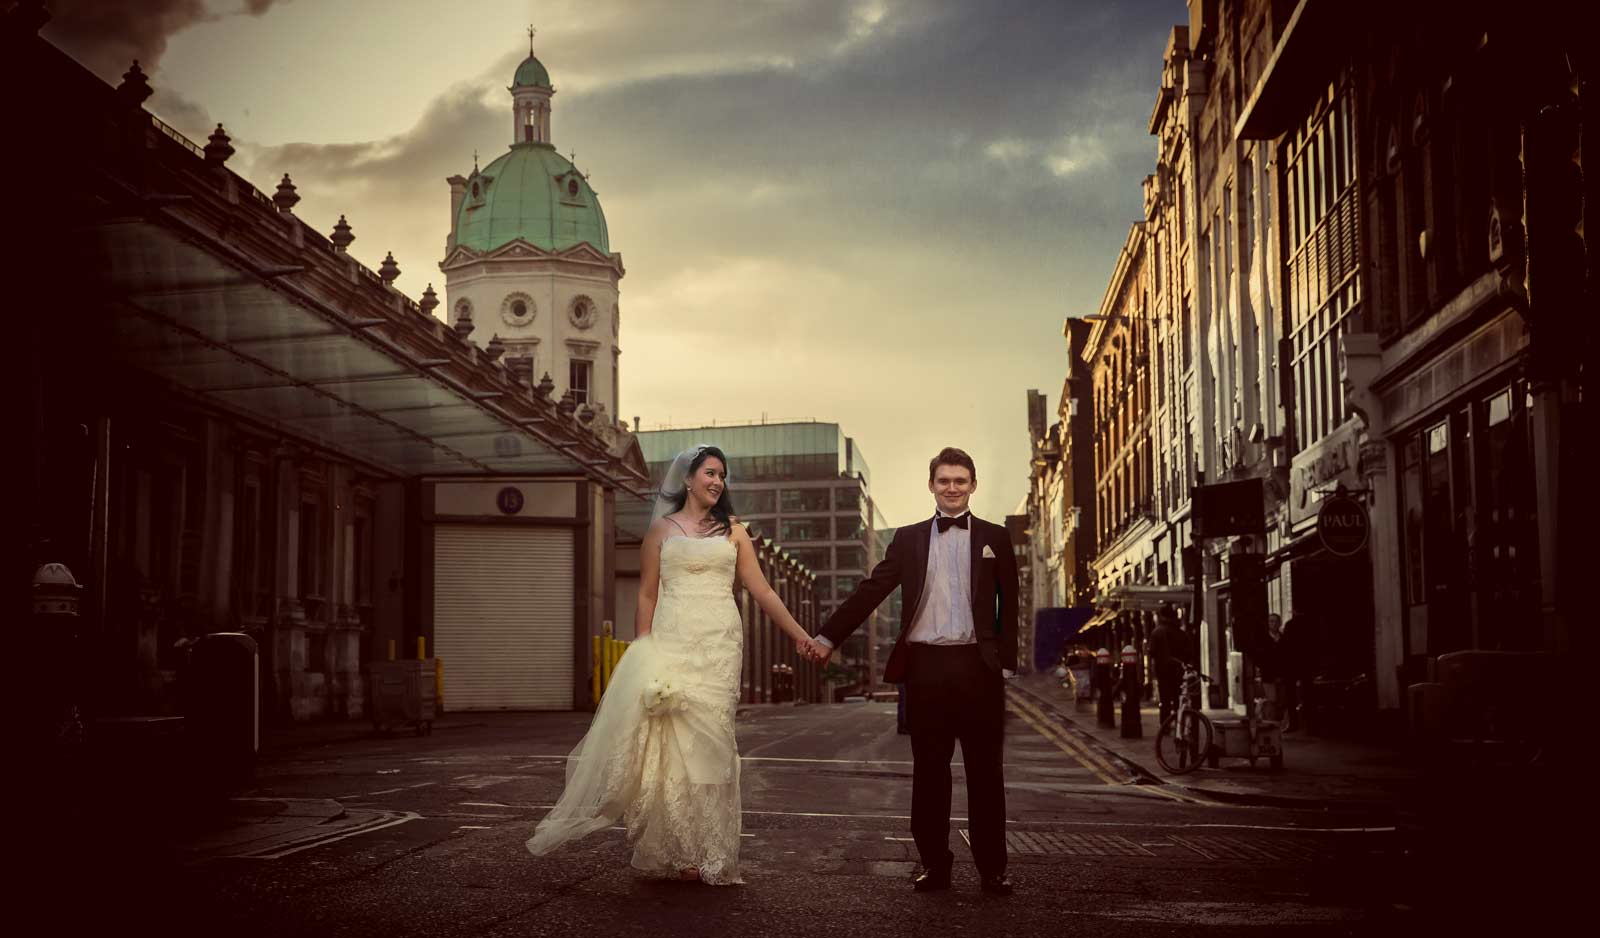 wedding by Smithfield market image